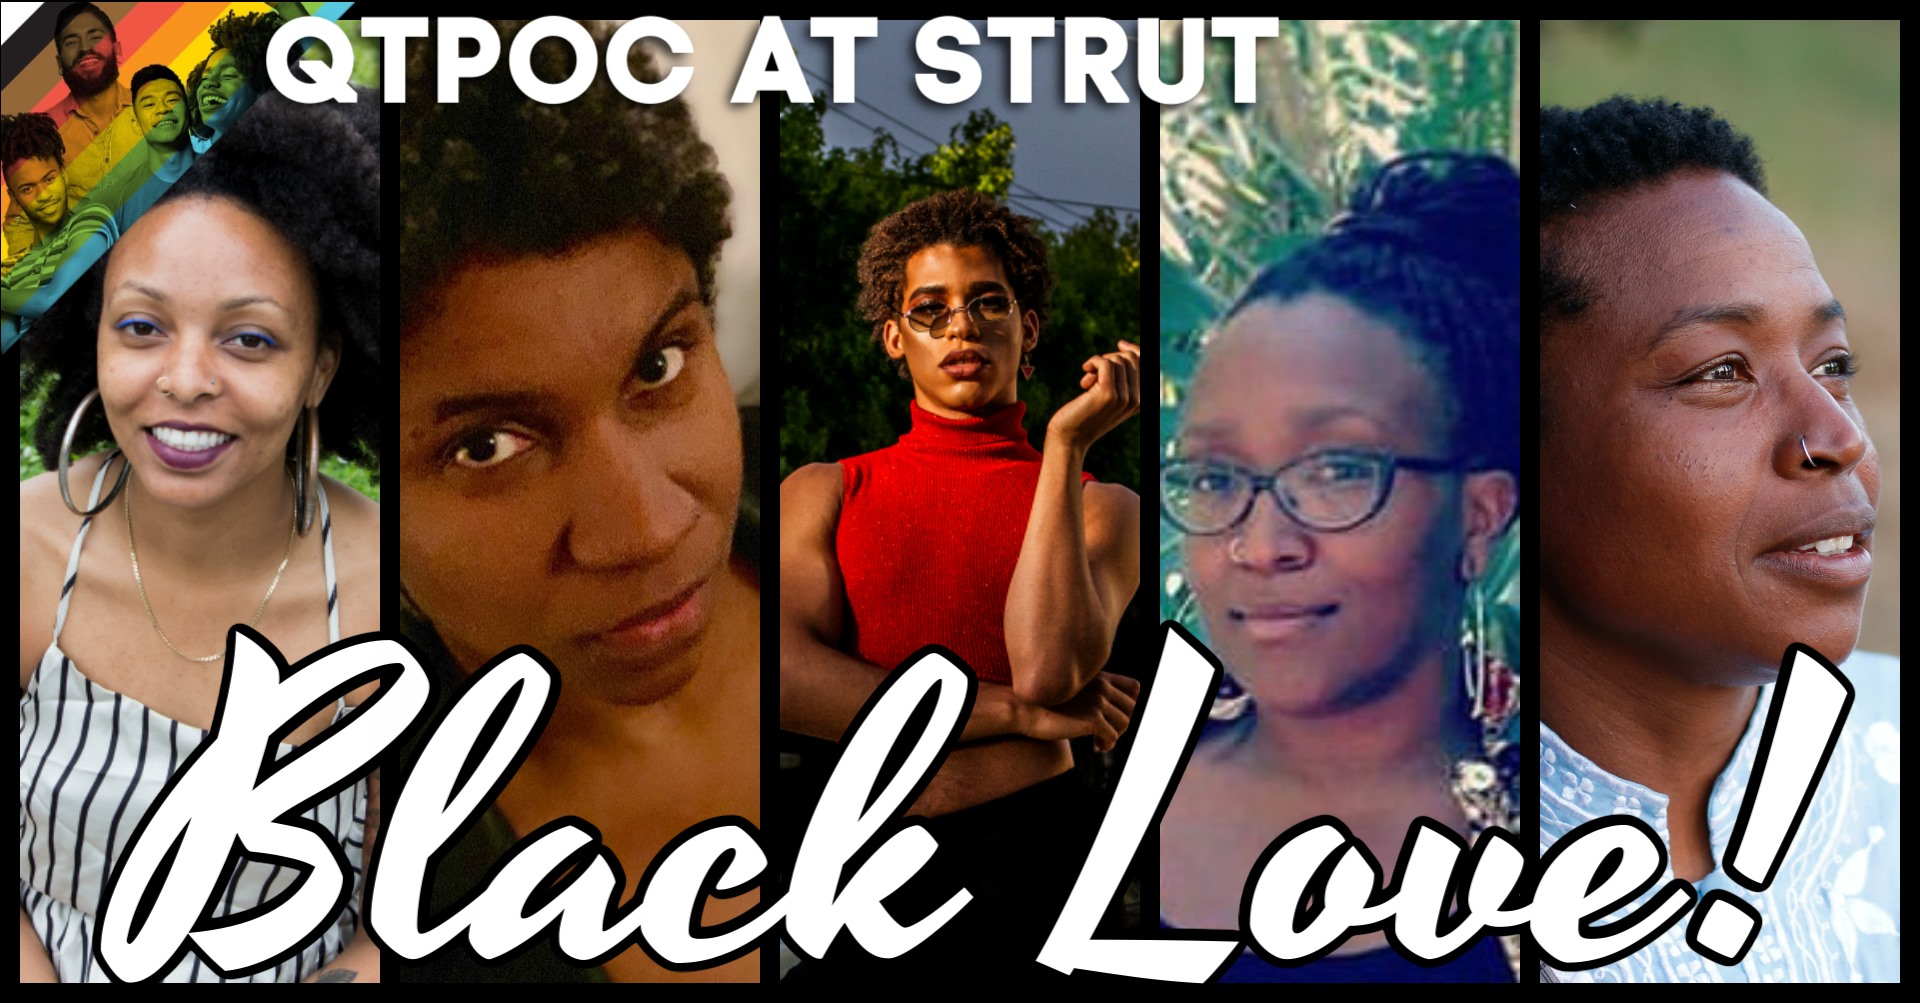 QTPOC at Strut